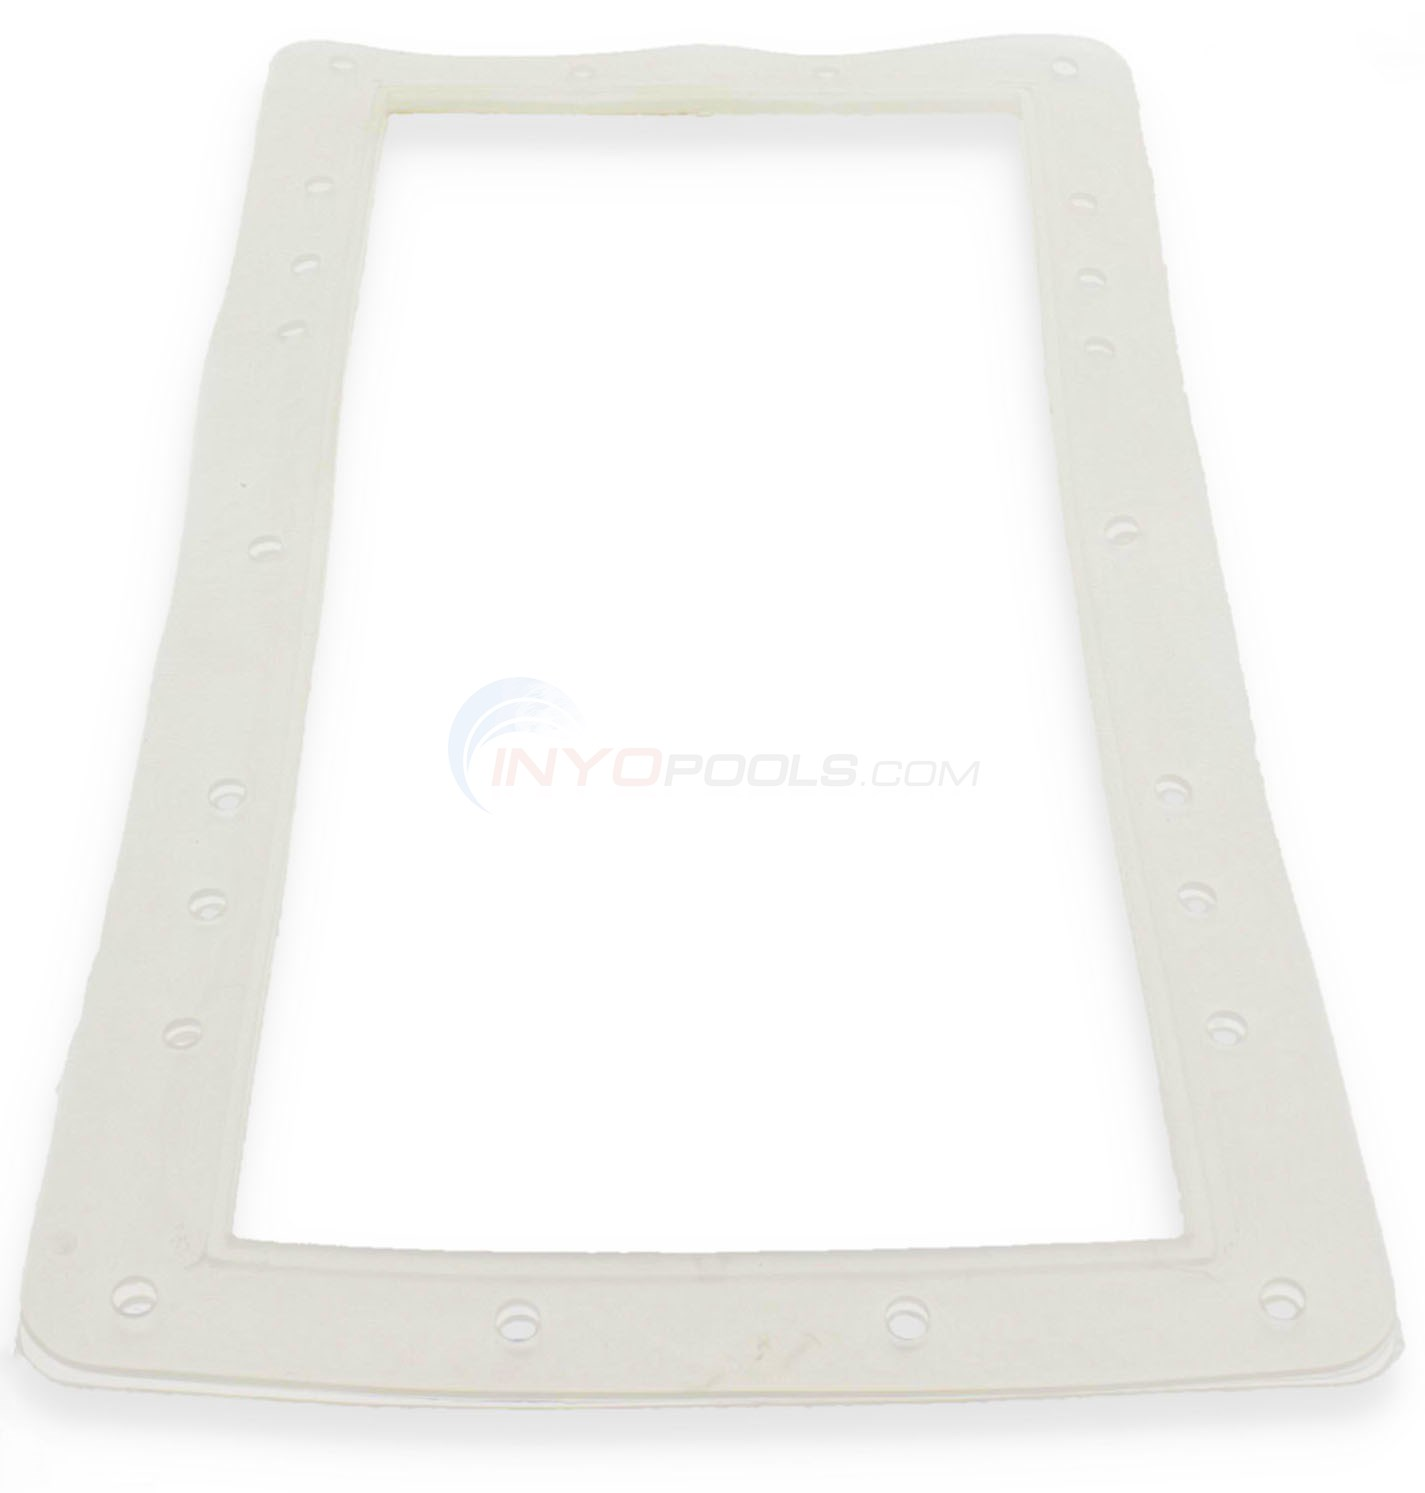 WALL PROTECTION GASKET, WIDE MOUTH